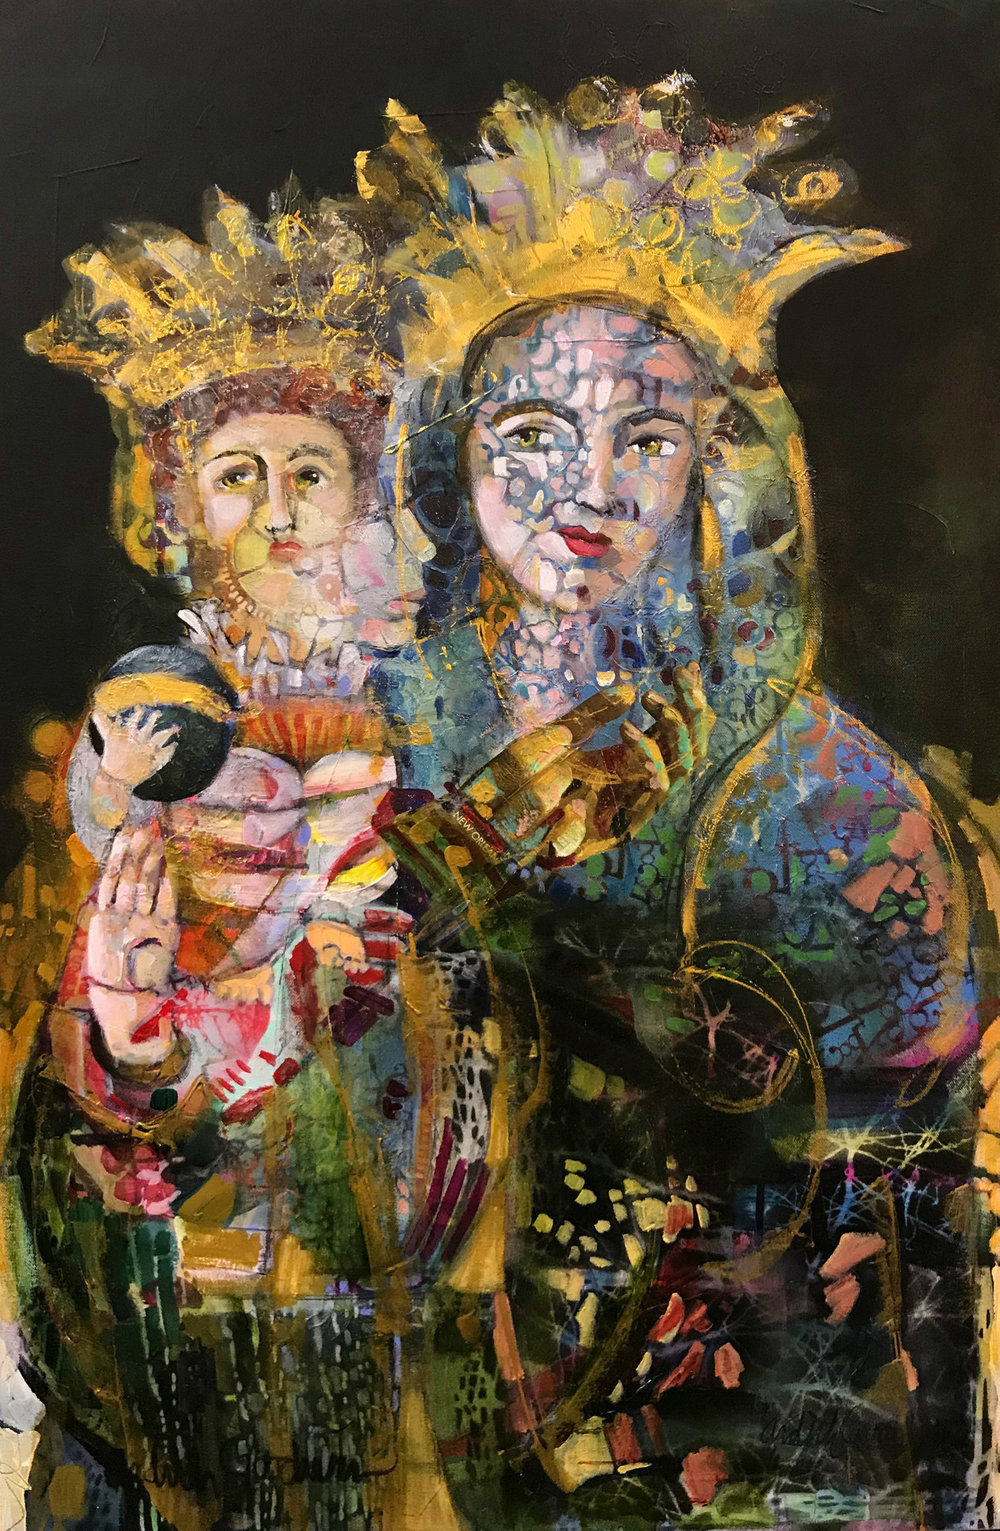 Madonna and Child by Ardith Goodwin